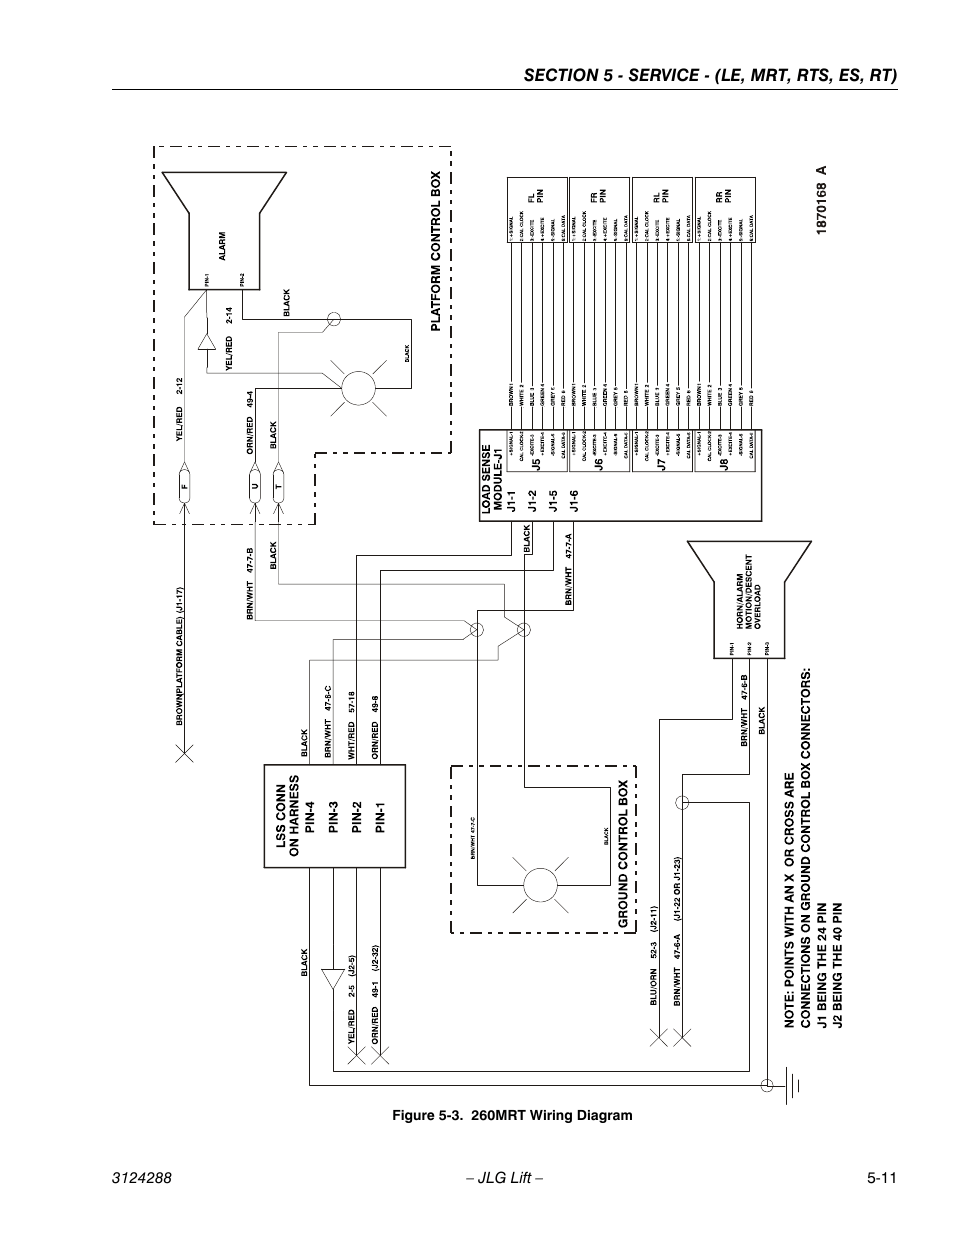 hight resolution of 260mrt wiring diagram 11 jlg lss scissors user manual page 47 78jlg wiring diagram 1